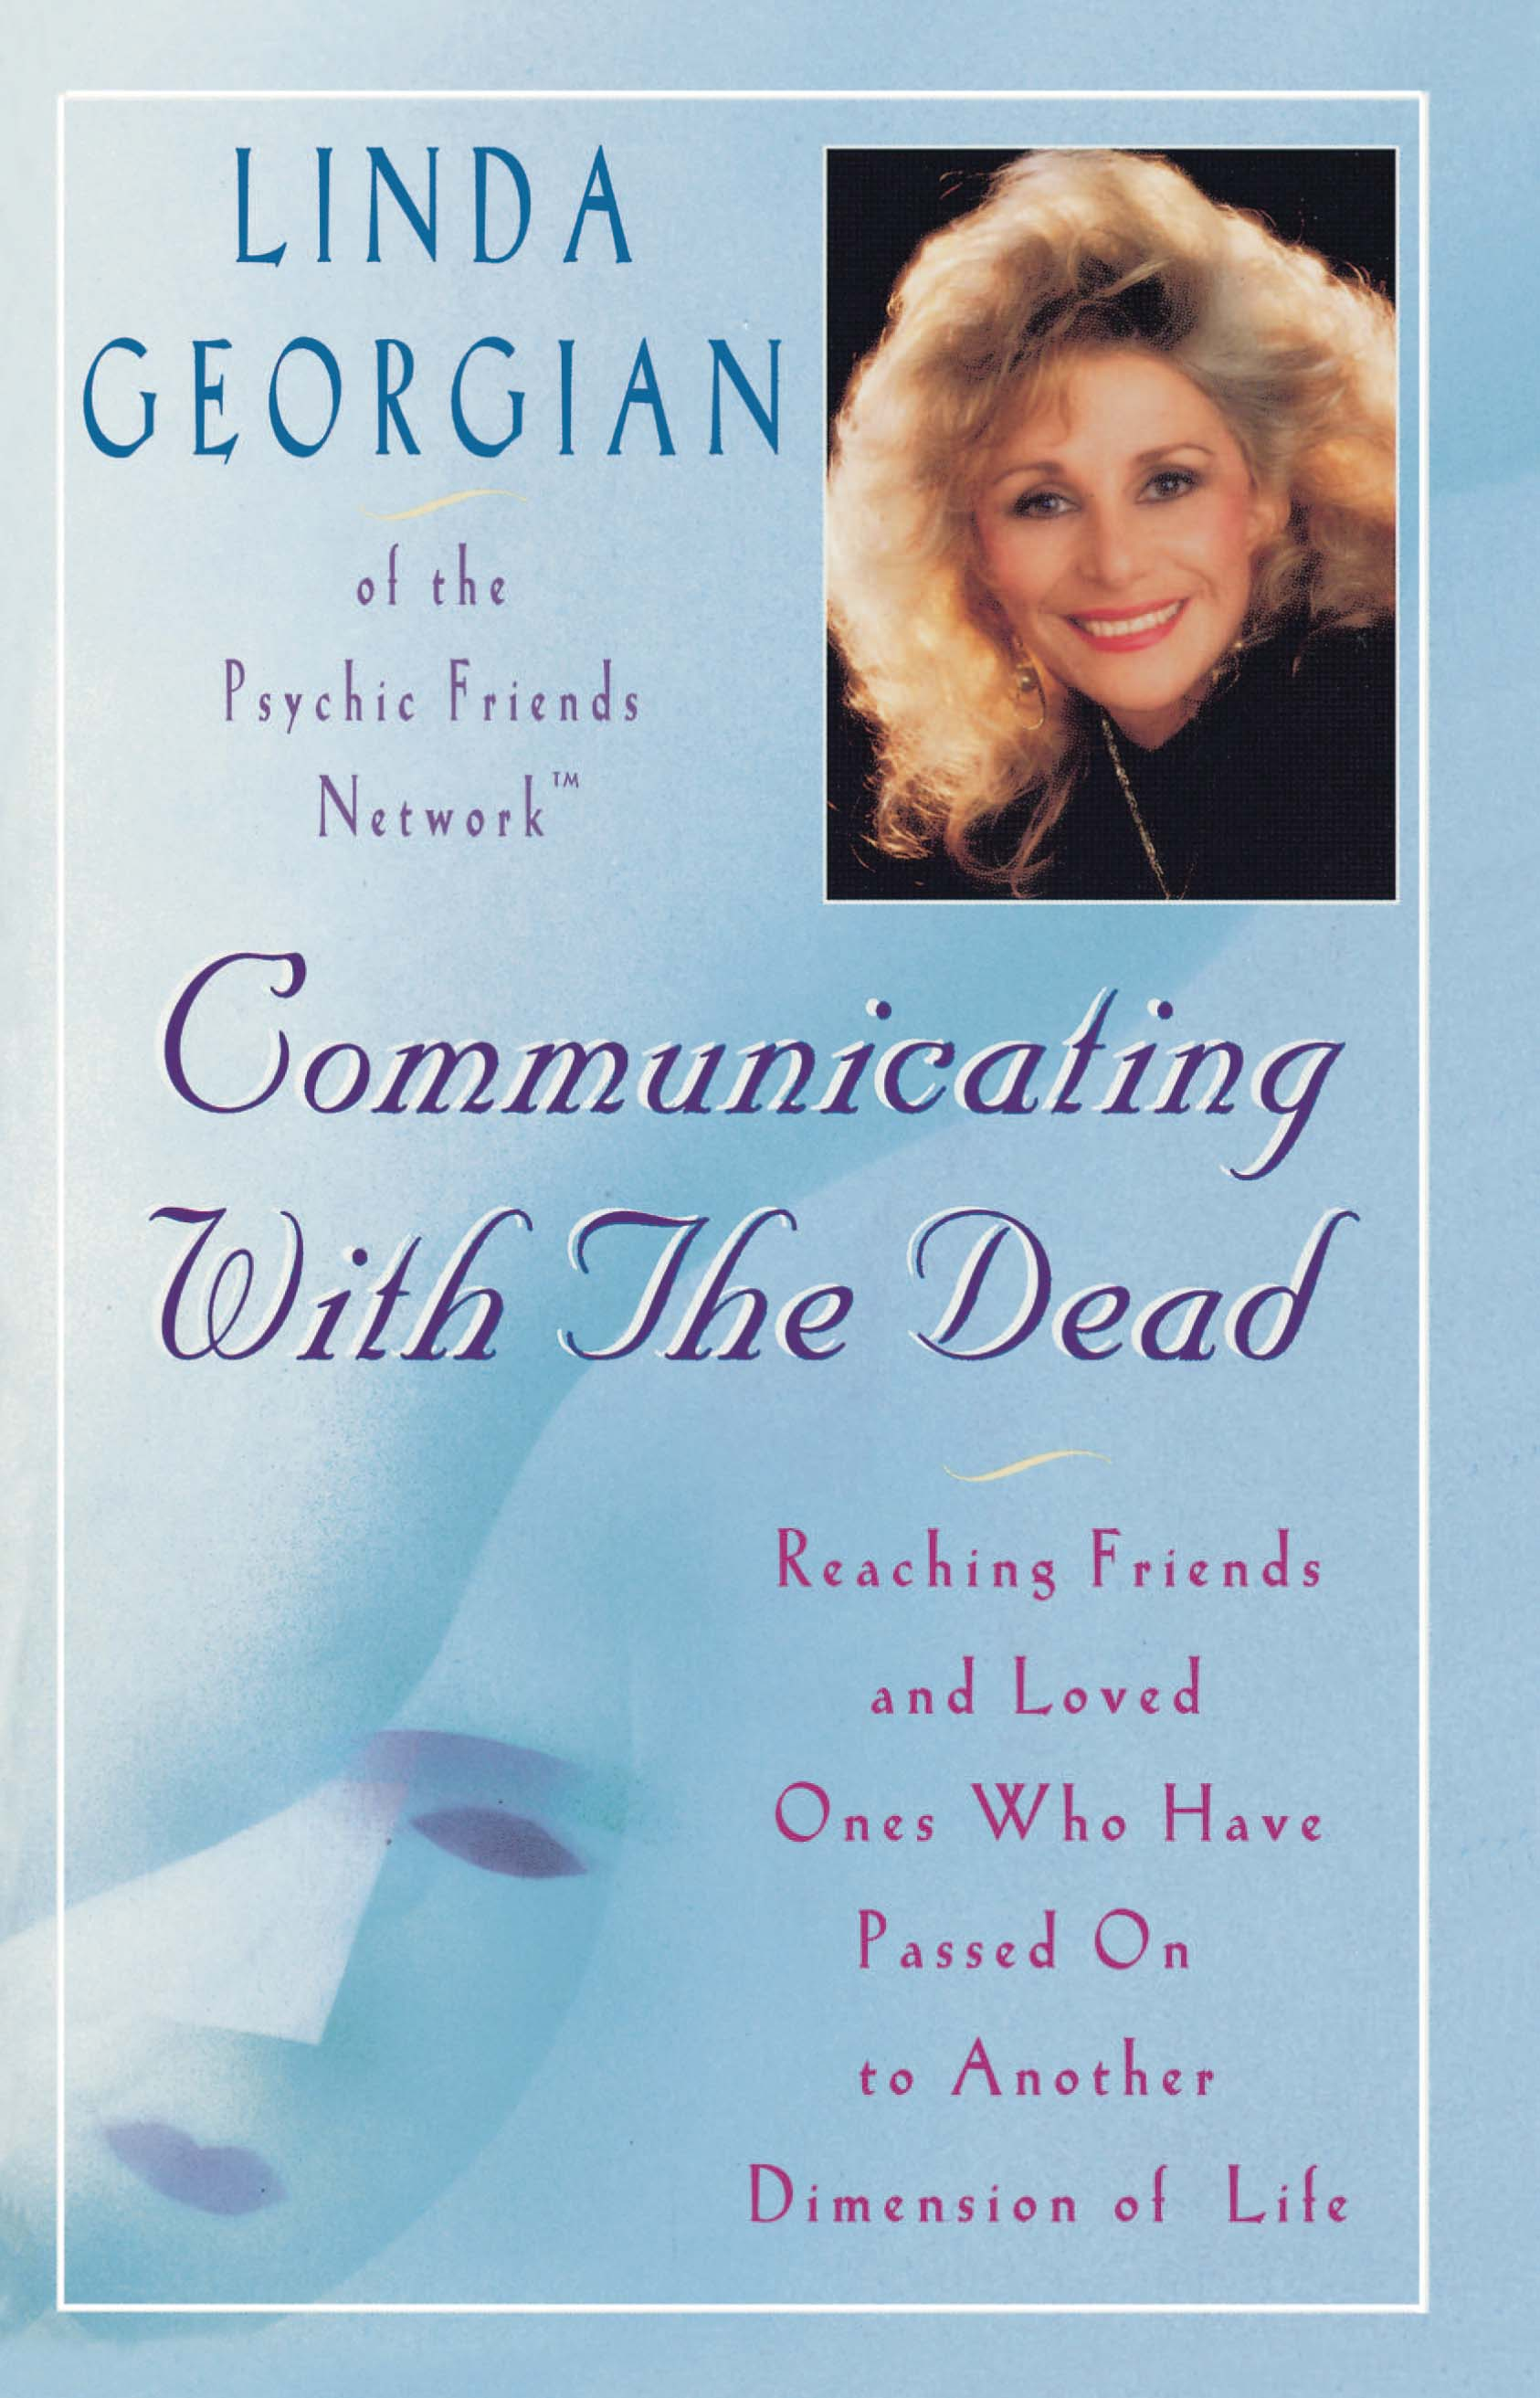 Communicating With The Dead by Linda Georgian